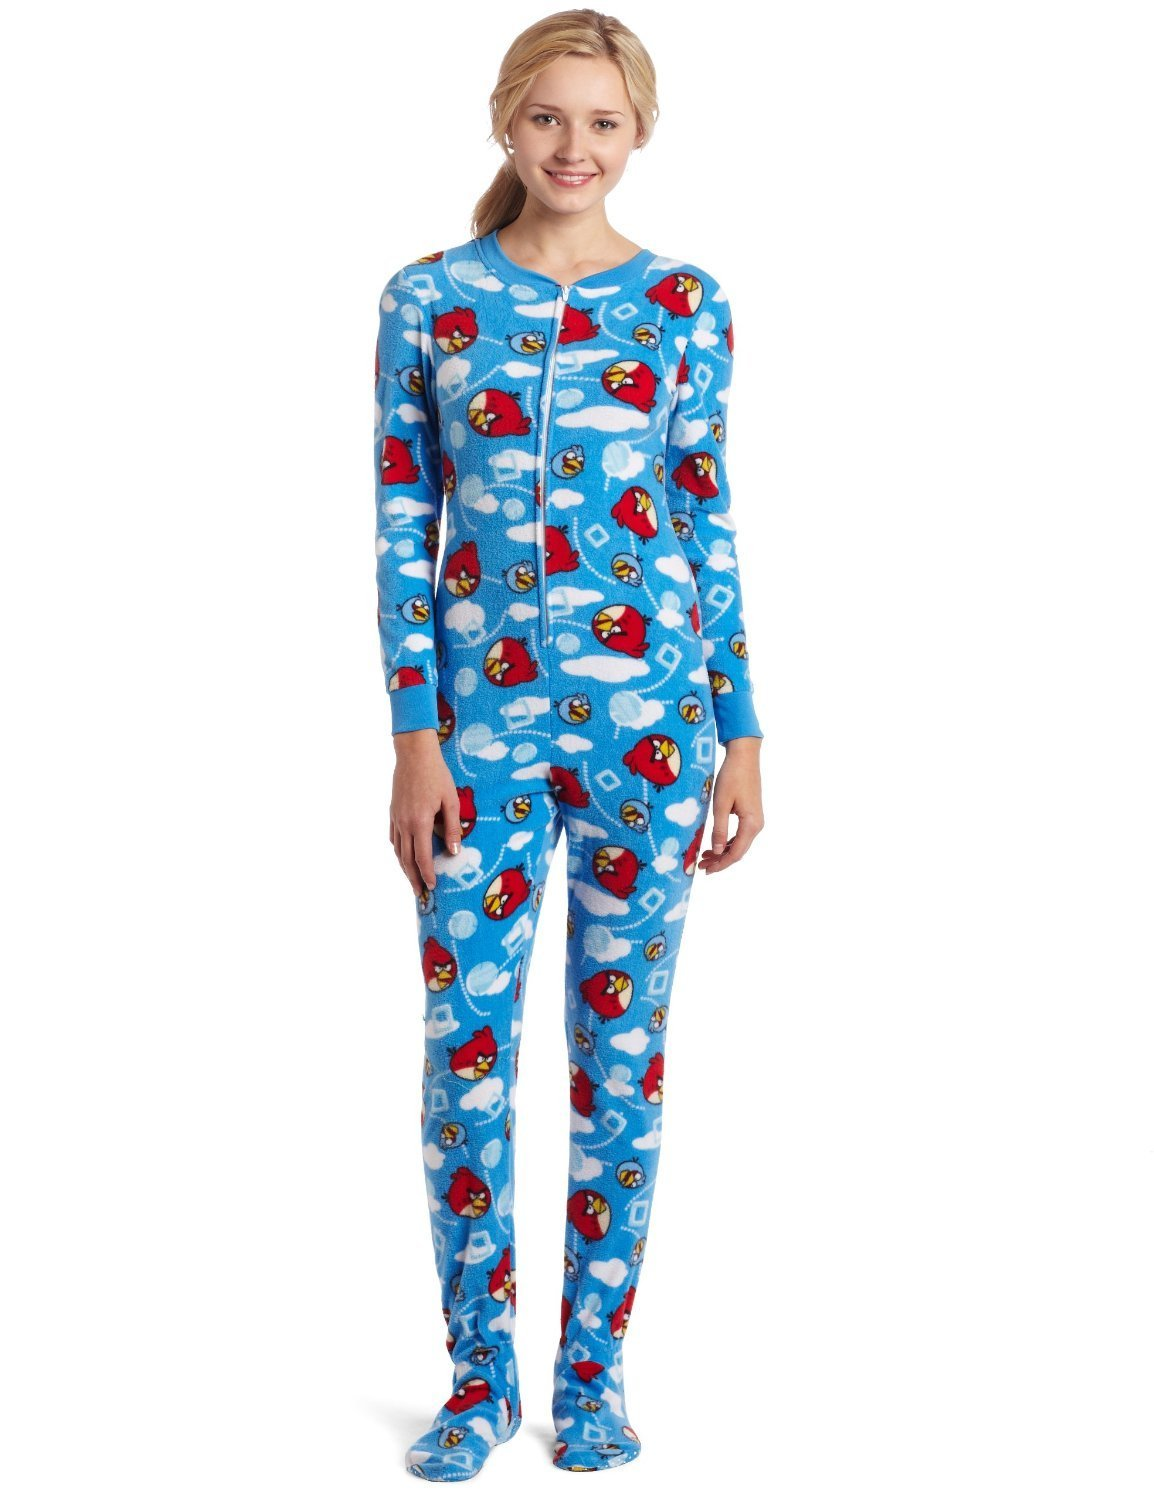 Onesies footie pajama angry bird girls teens for women blue